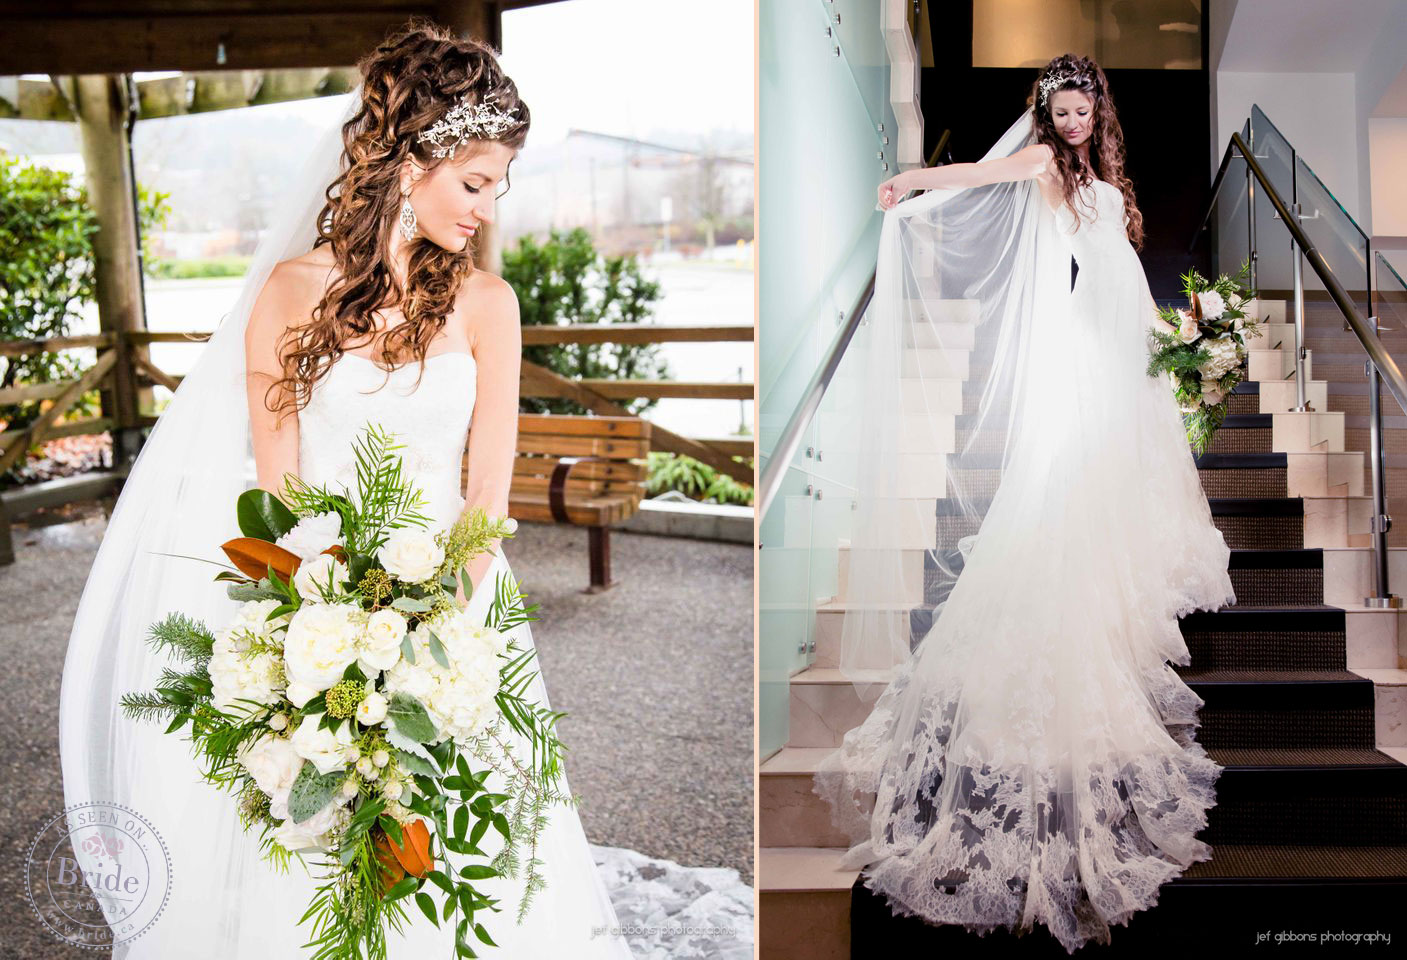 LeahRose amp Brendan at Sutton Placebr A Real Winter Wedding Vancouver Style elvish wedding dress Leah Rose s gorgeous St Patrick gown